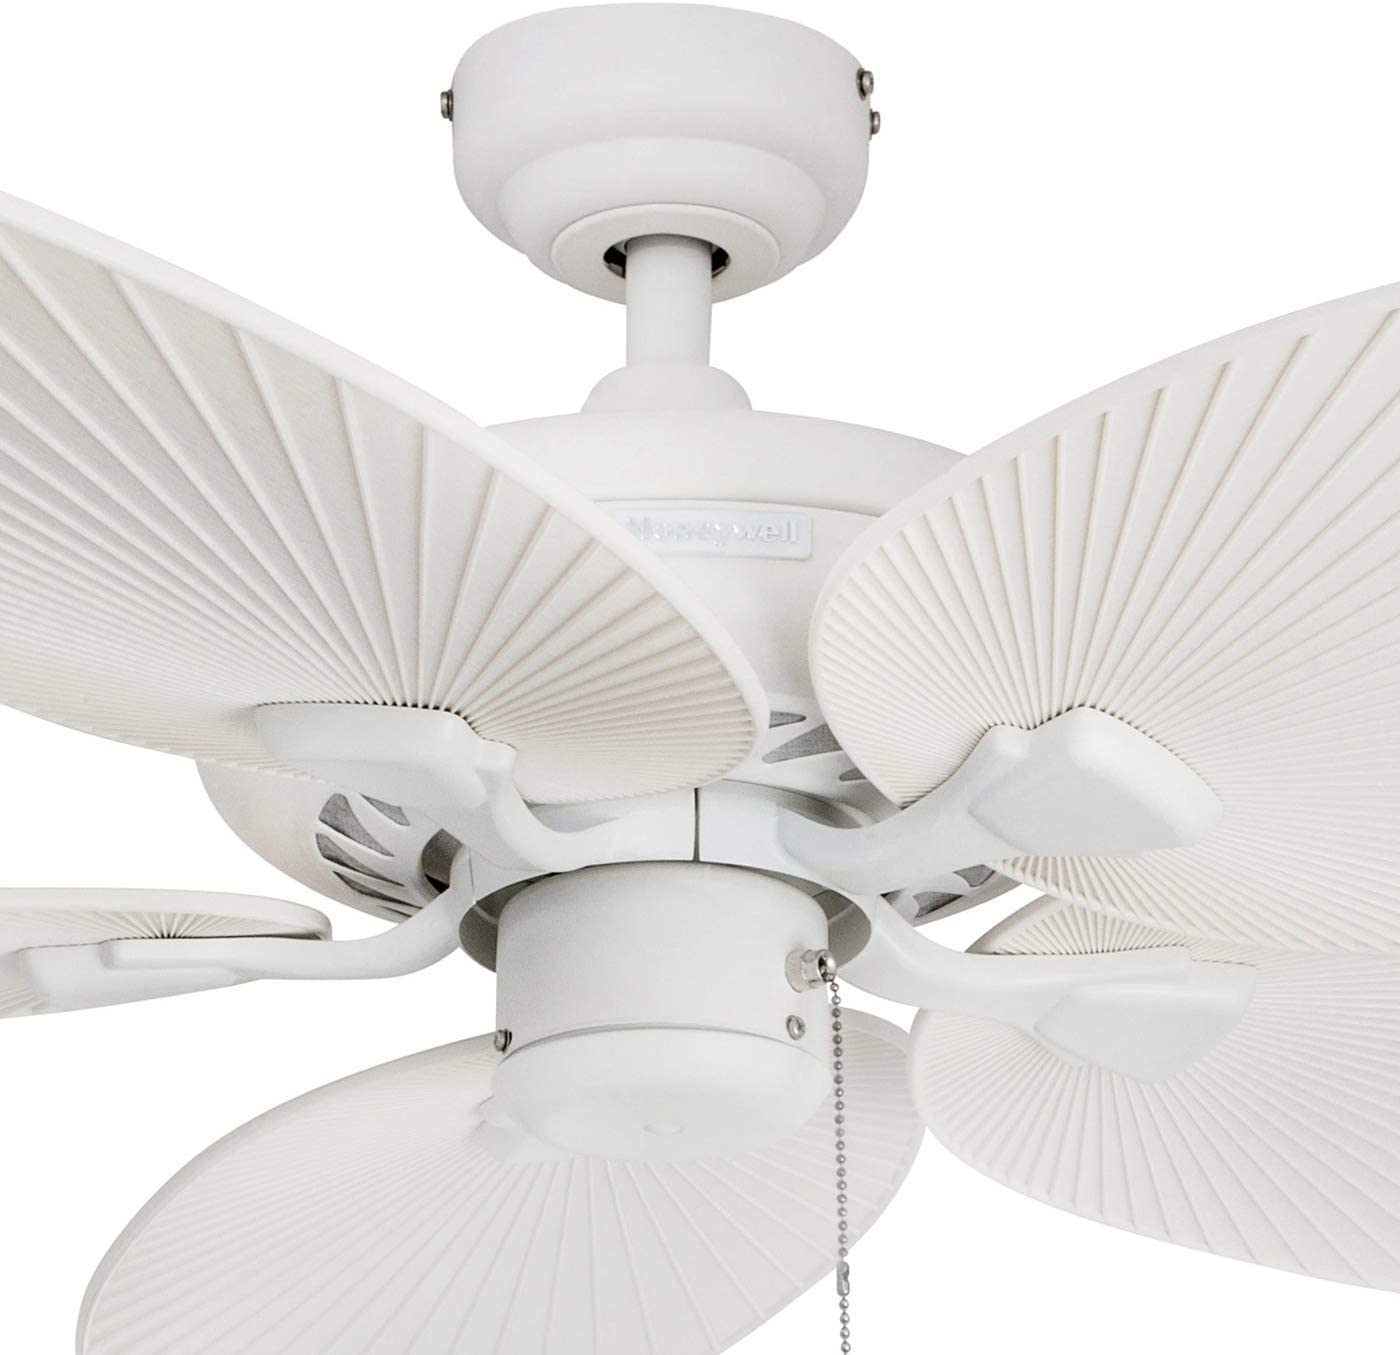 Indoor/Outdoor Ceiling Fan, 52″